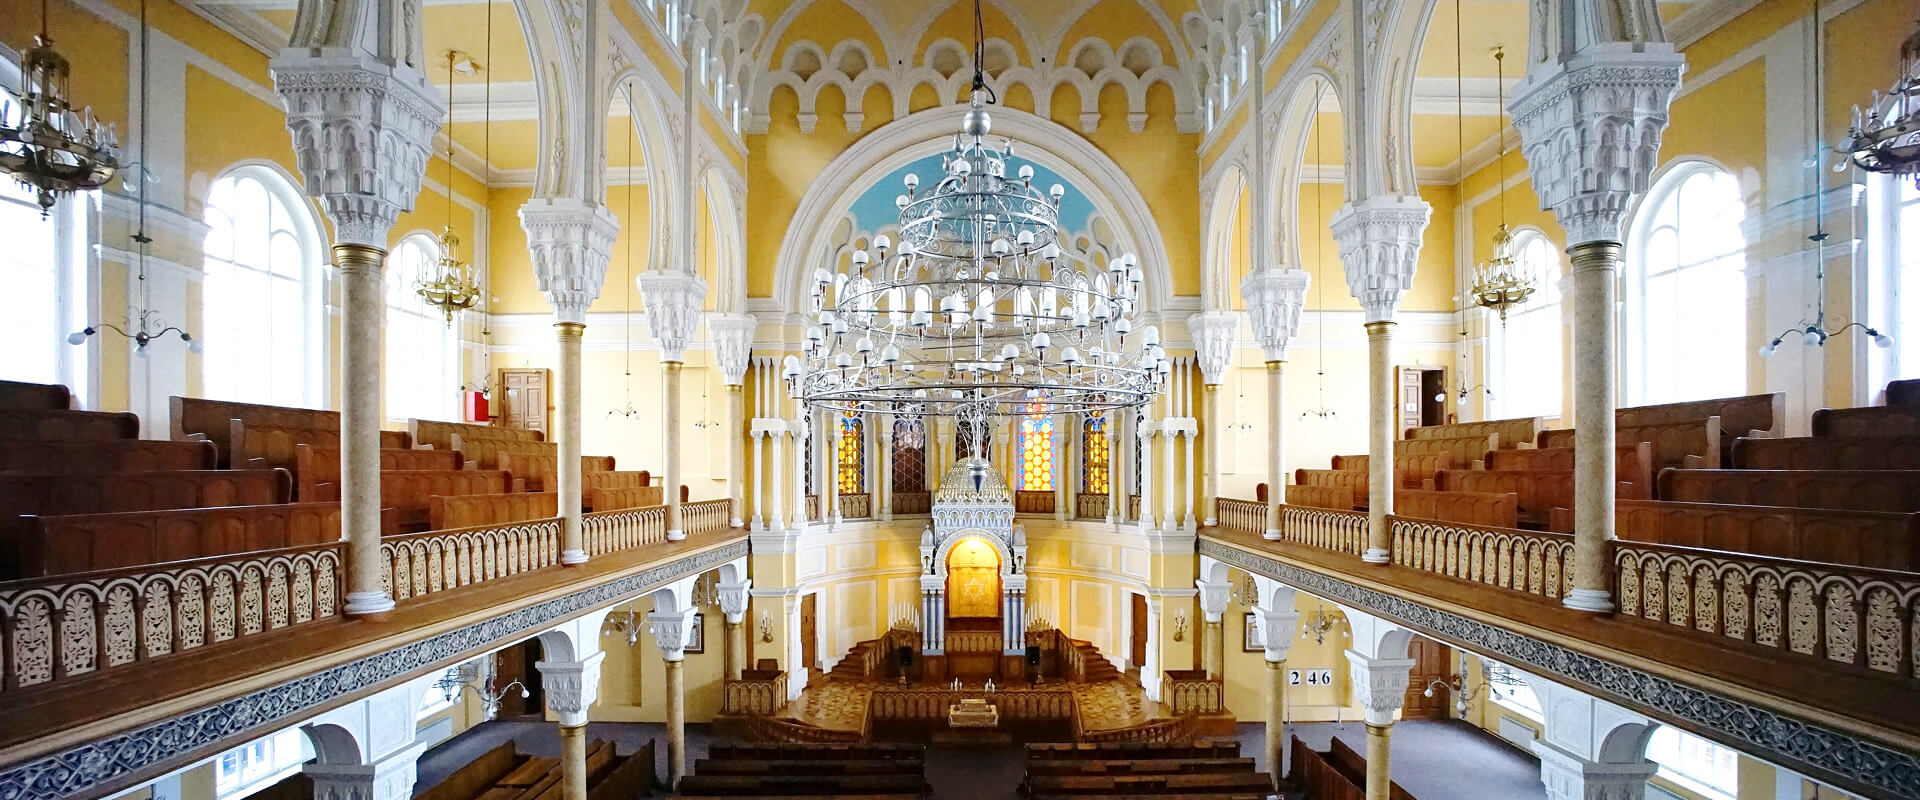 Grand Choral Synagogue, Russia